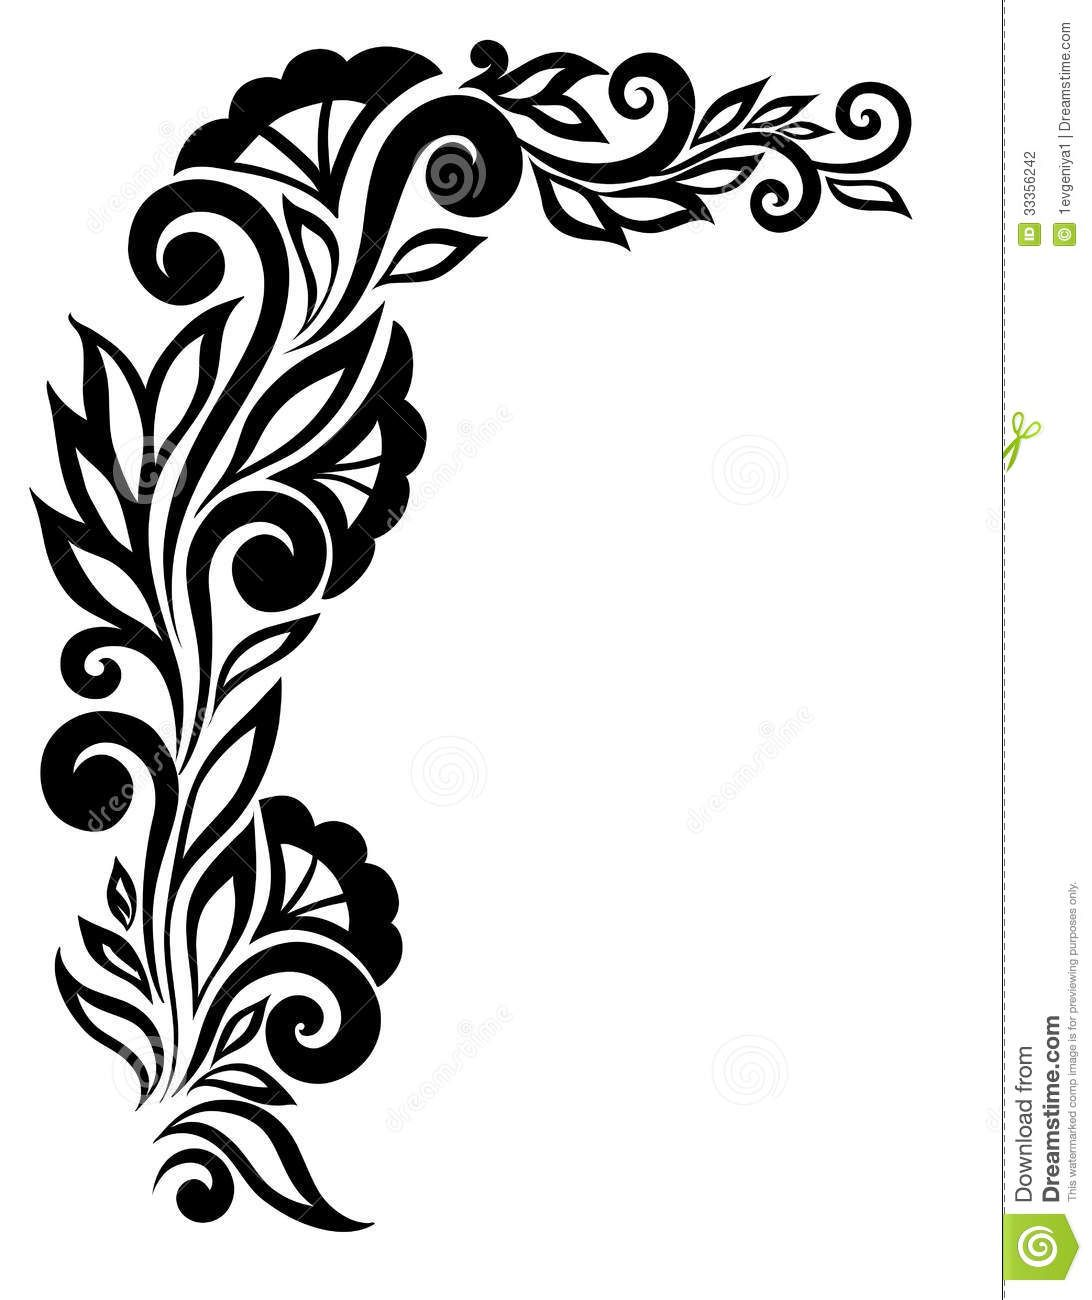 Superb Border Designs Black And White